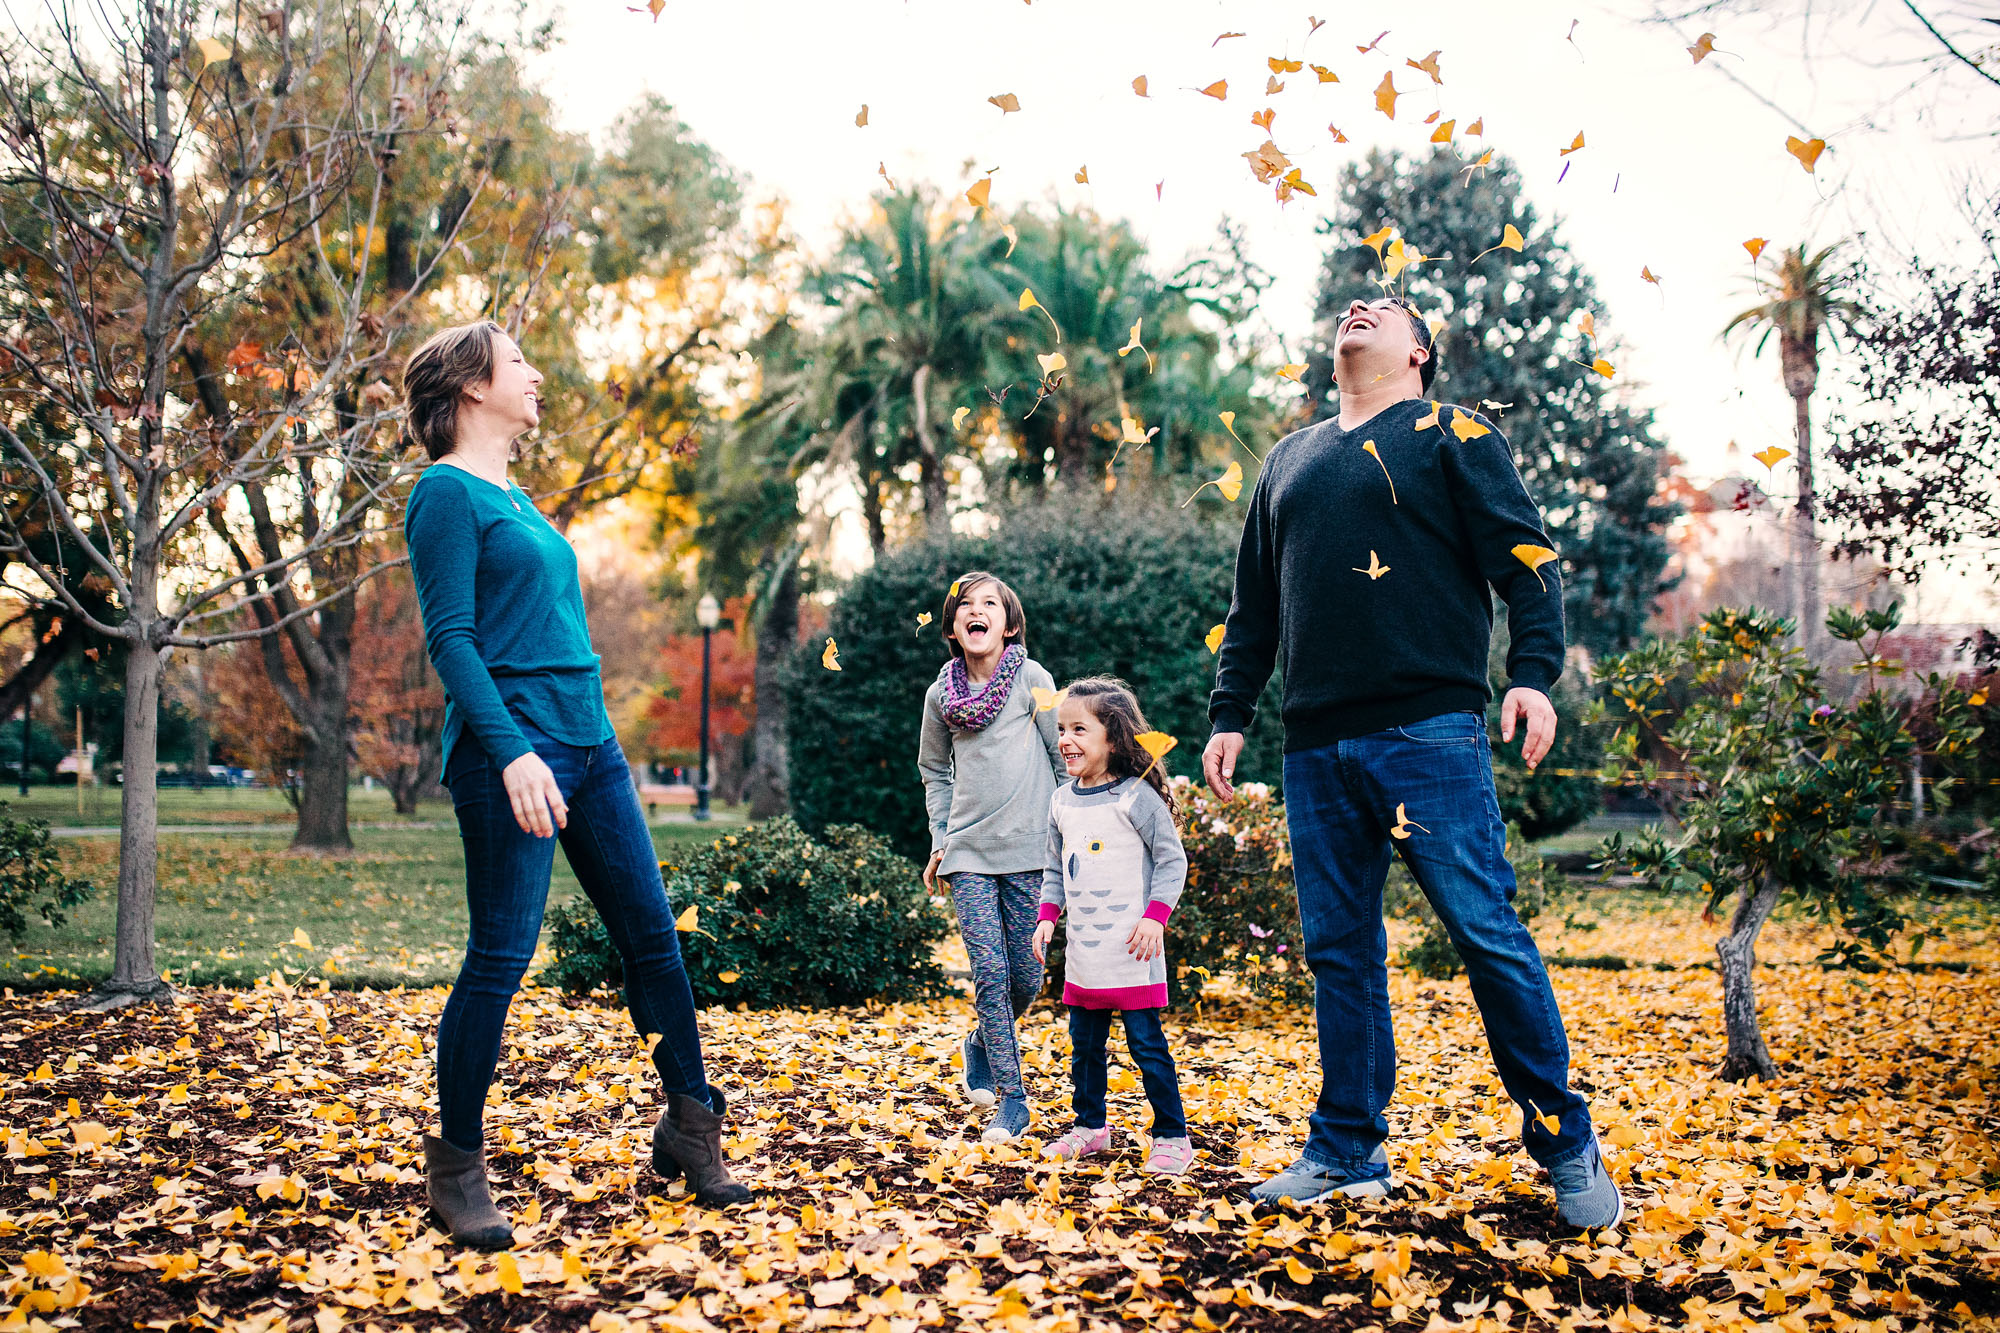 A family of four plays together and tosses up fall leaves during a lifestyle photo session with Amy Wright, a photographer based out of Roseville, California.